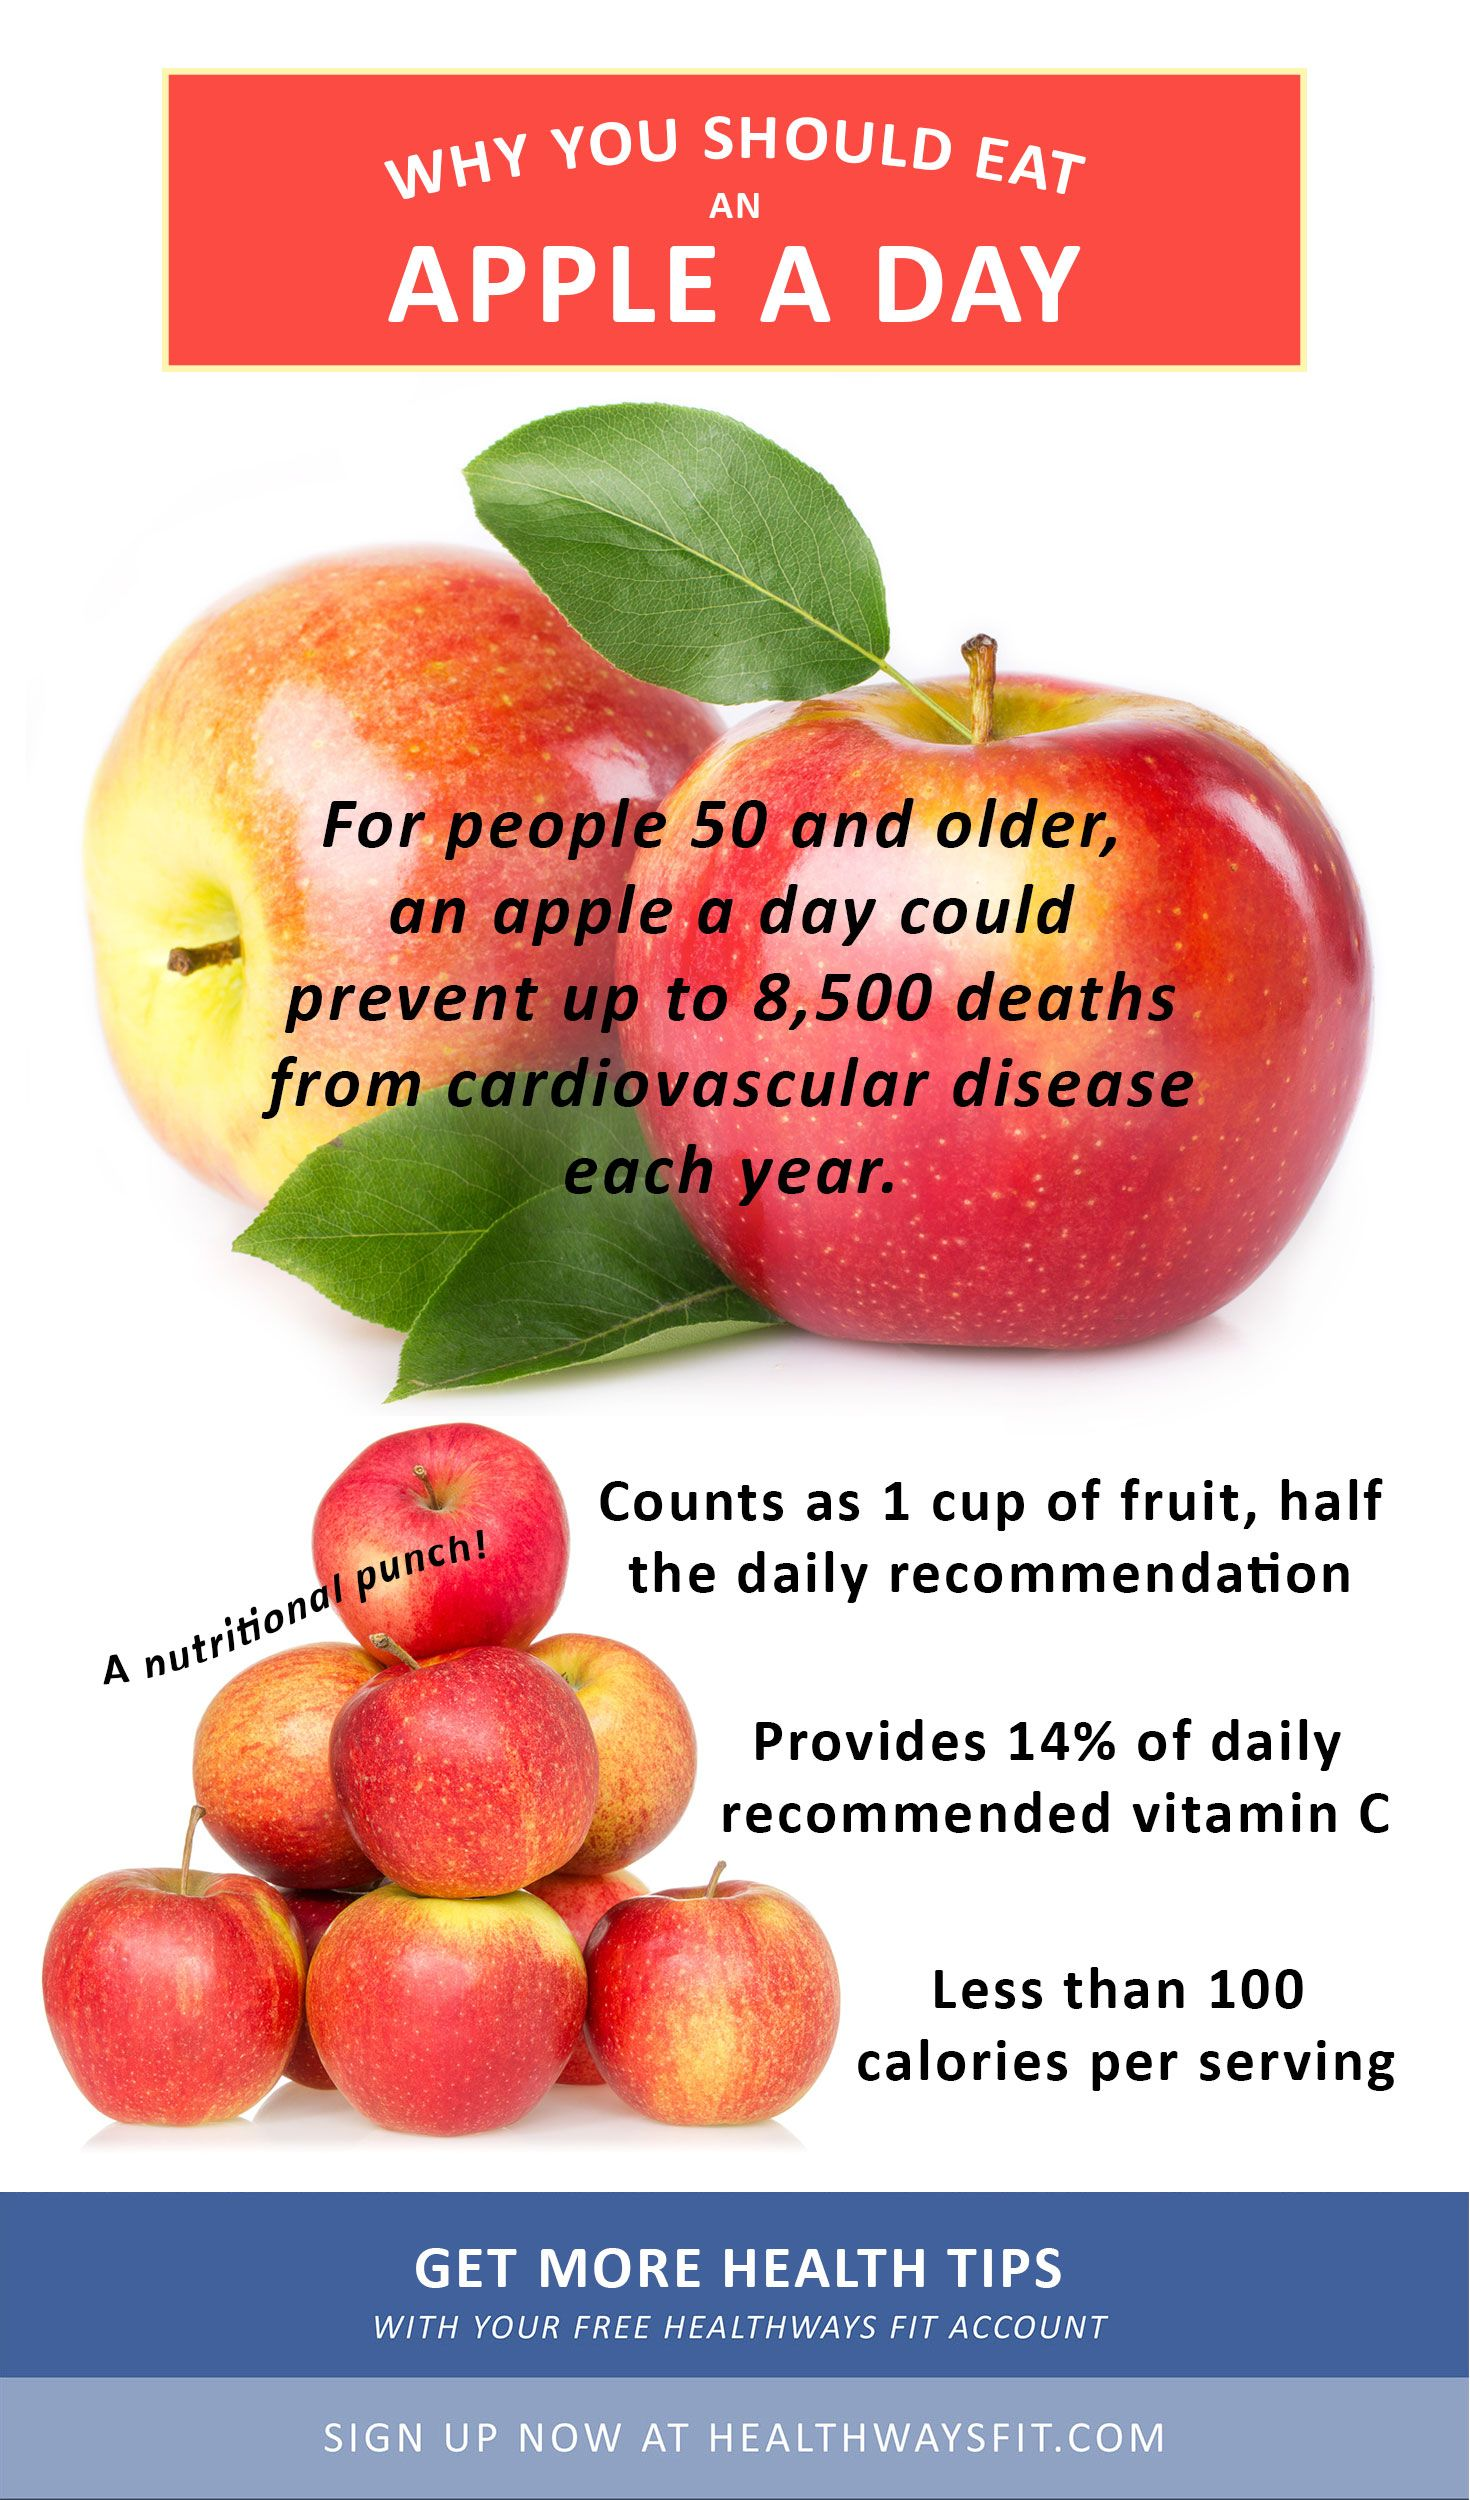 Benefits of apples: Cardiovascular disease prevention